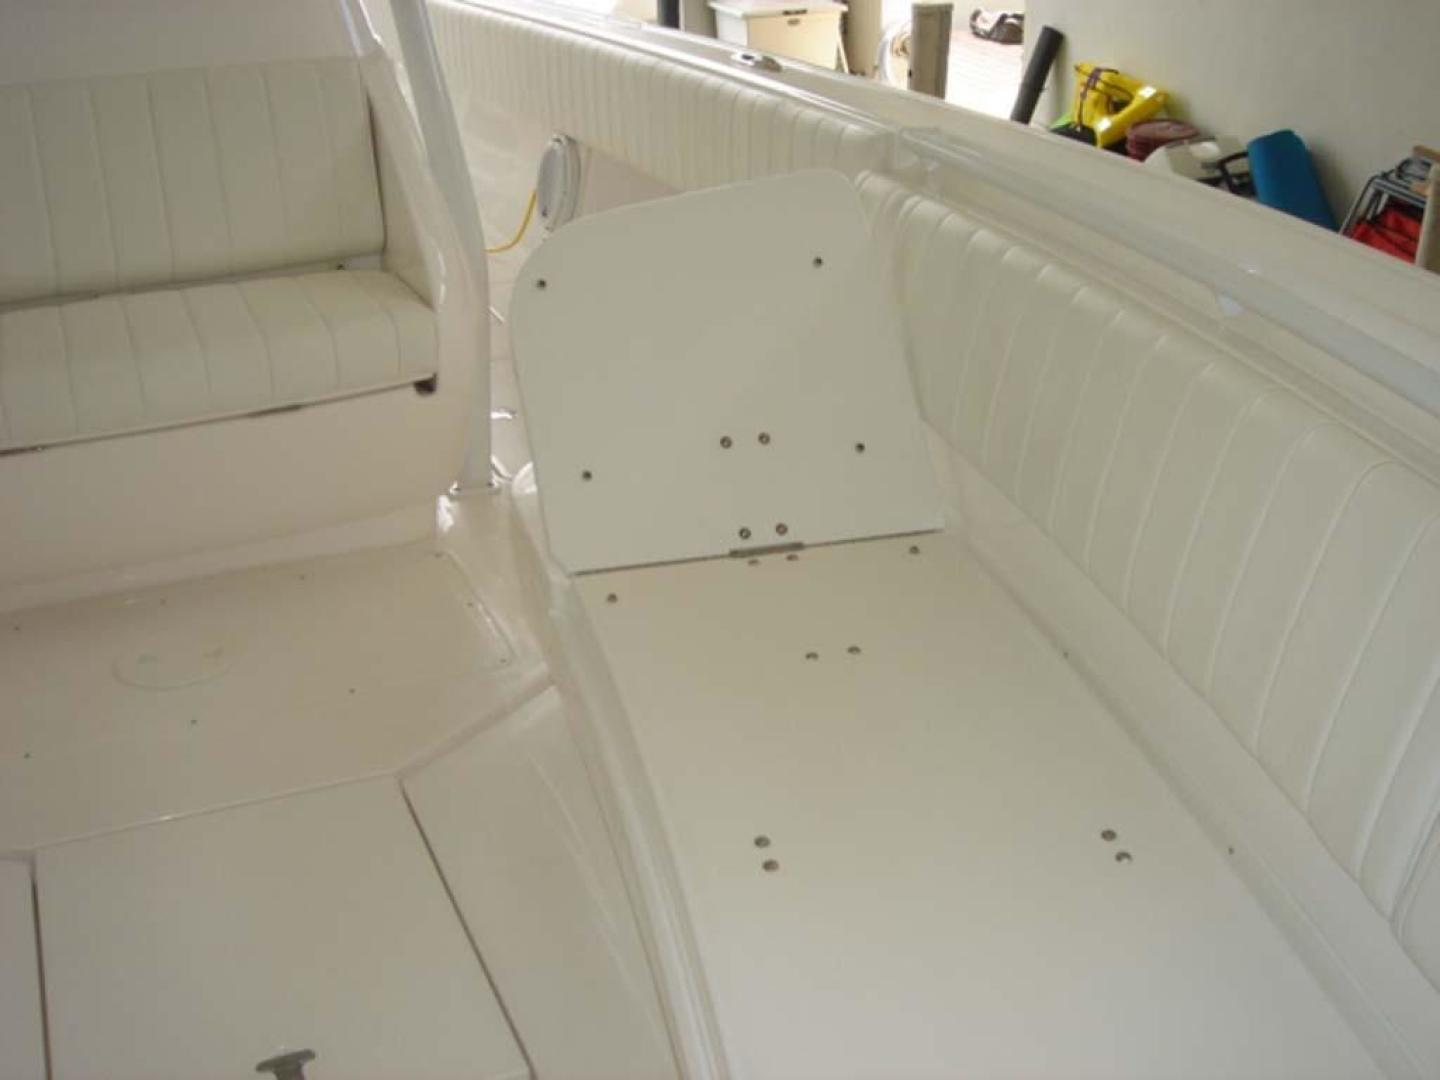 Intrepid-327 Center Console 2014-Deep Ship Palm Beach Gardens-Florida-United States-924009 | Thumbnail